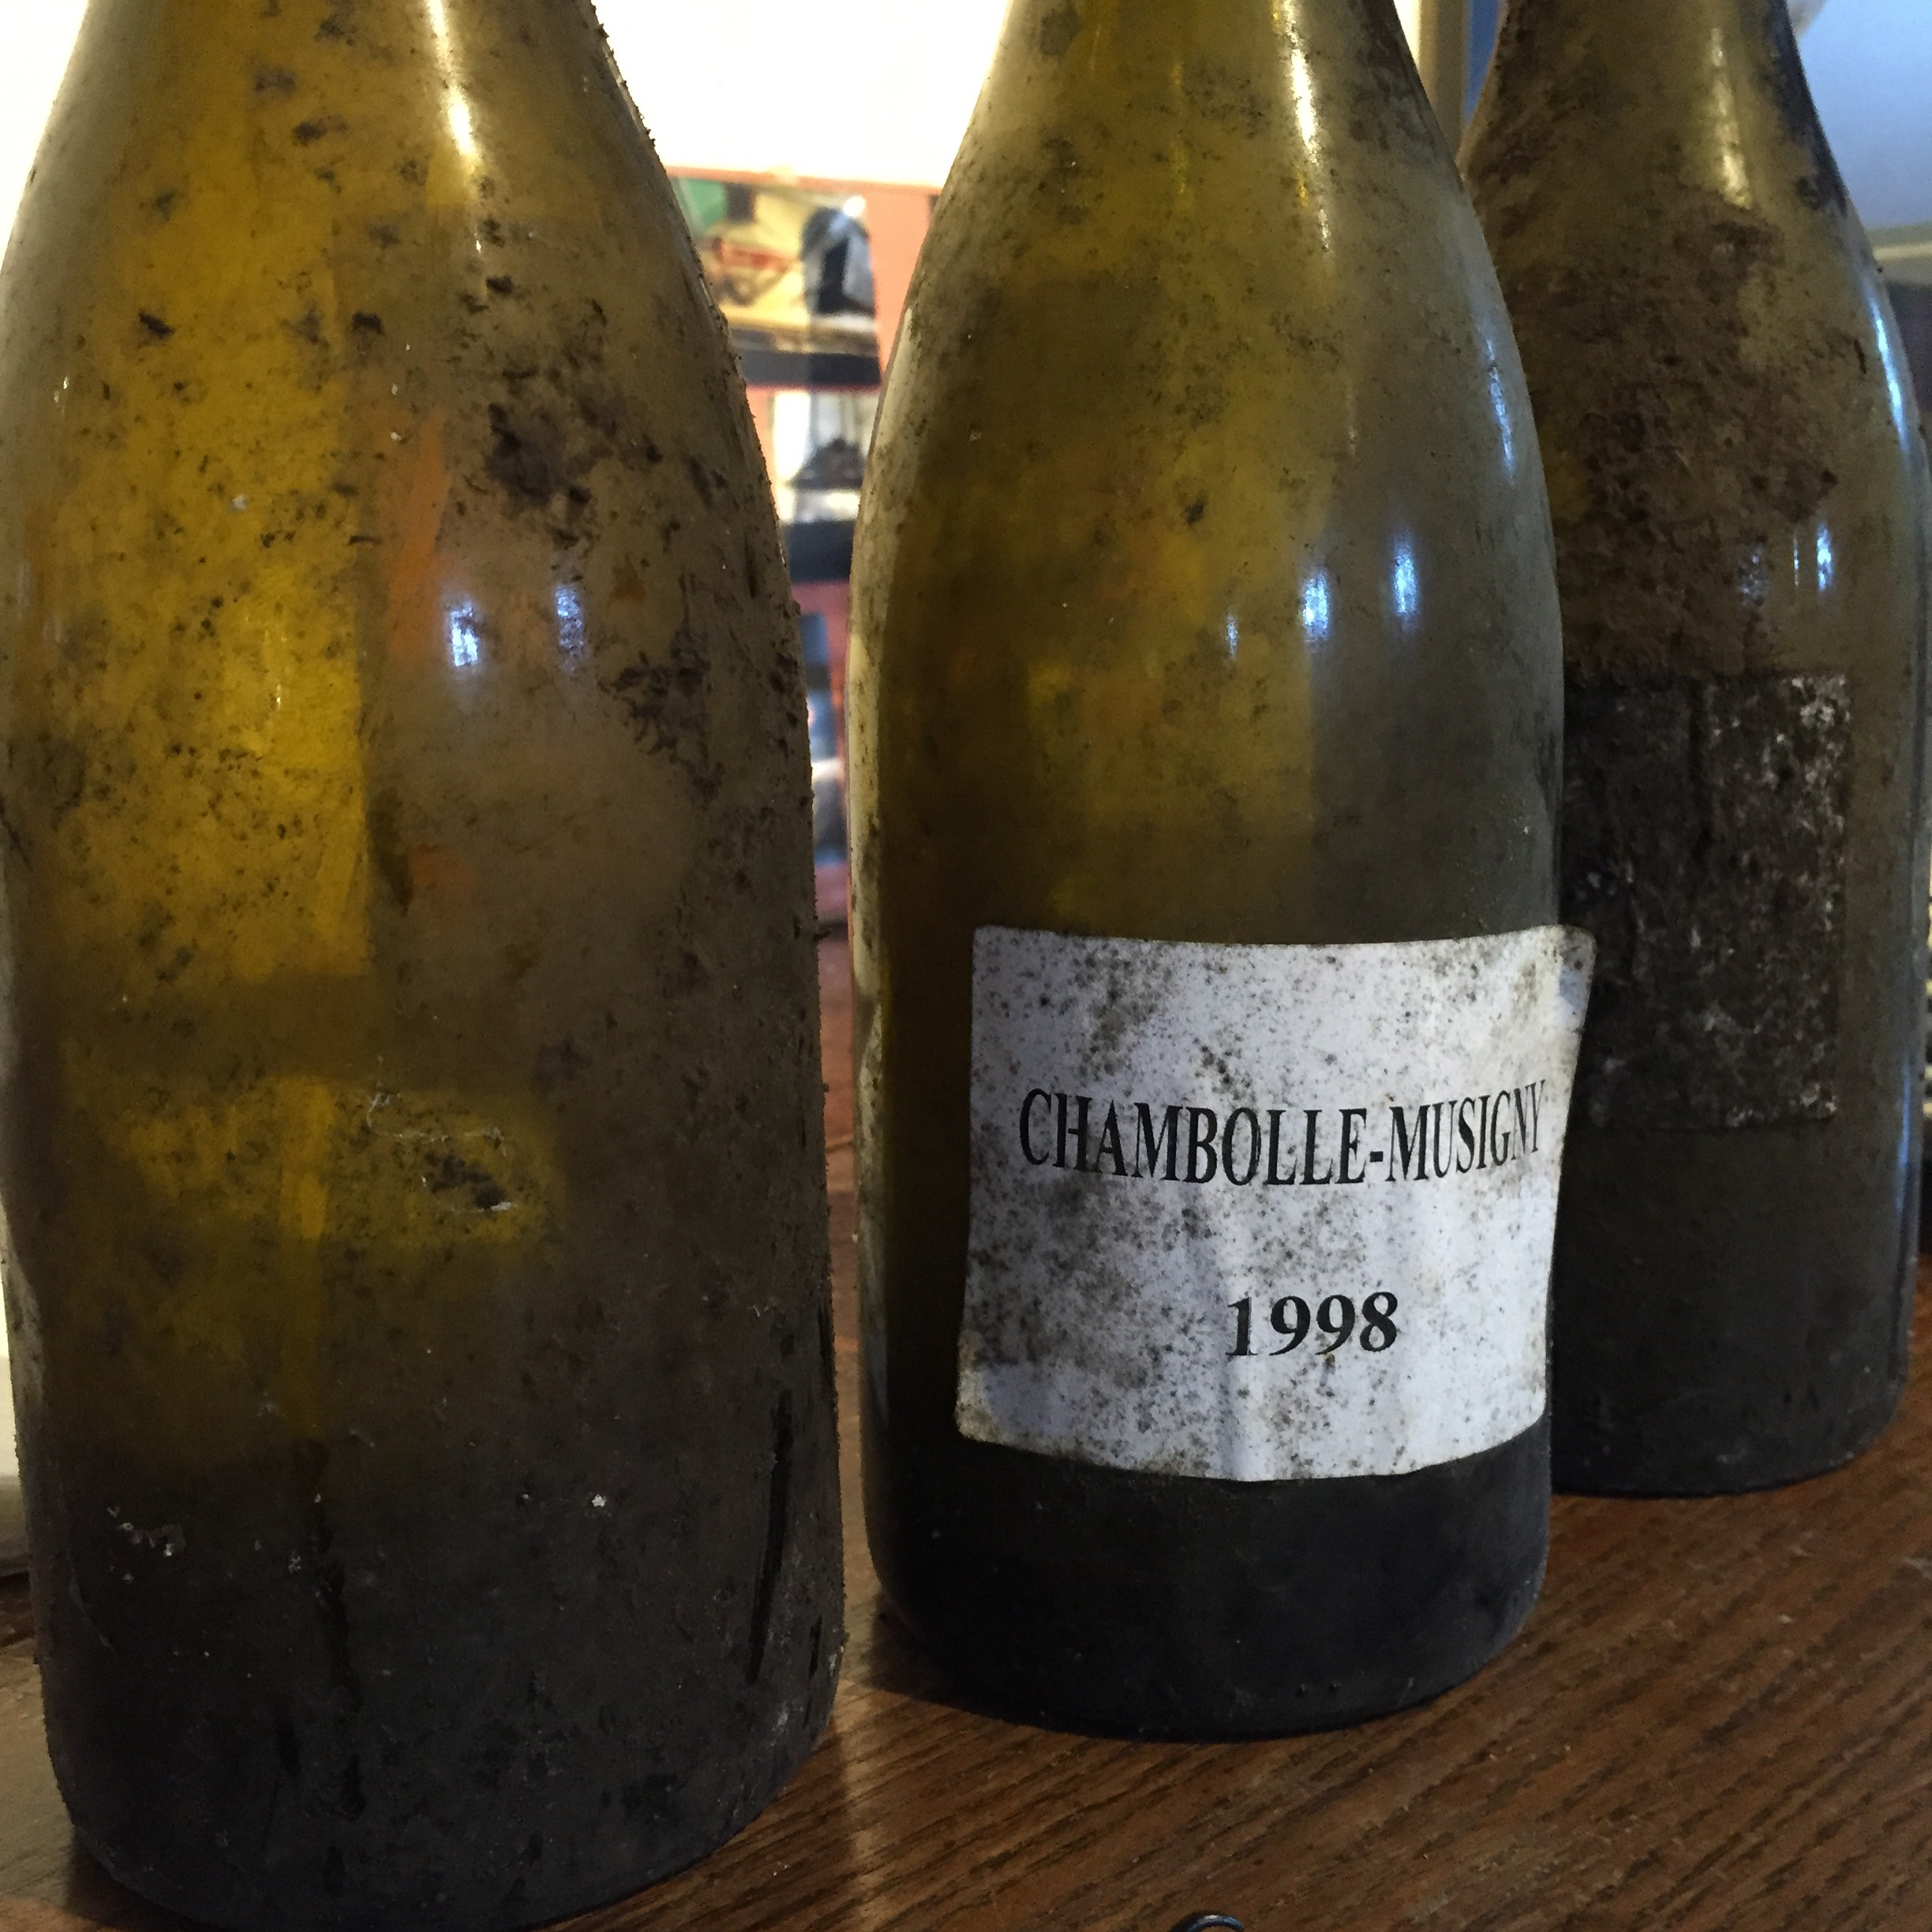 a '98 Chambolle sandwich, between two bottles of '97